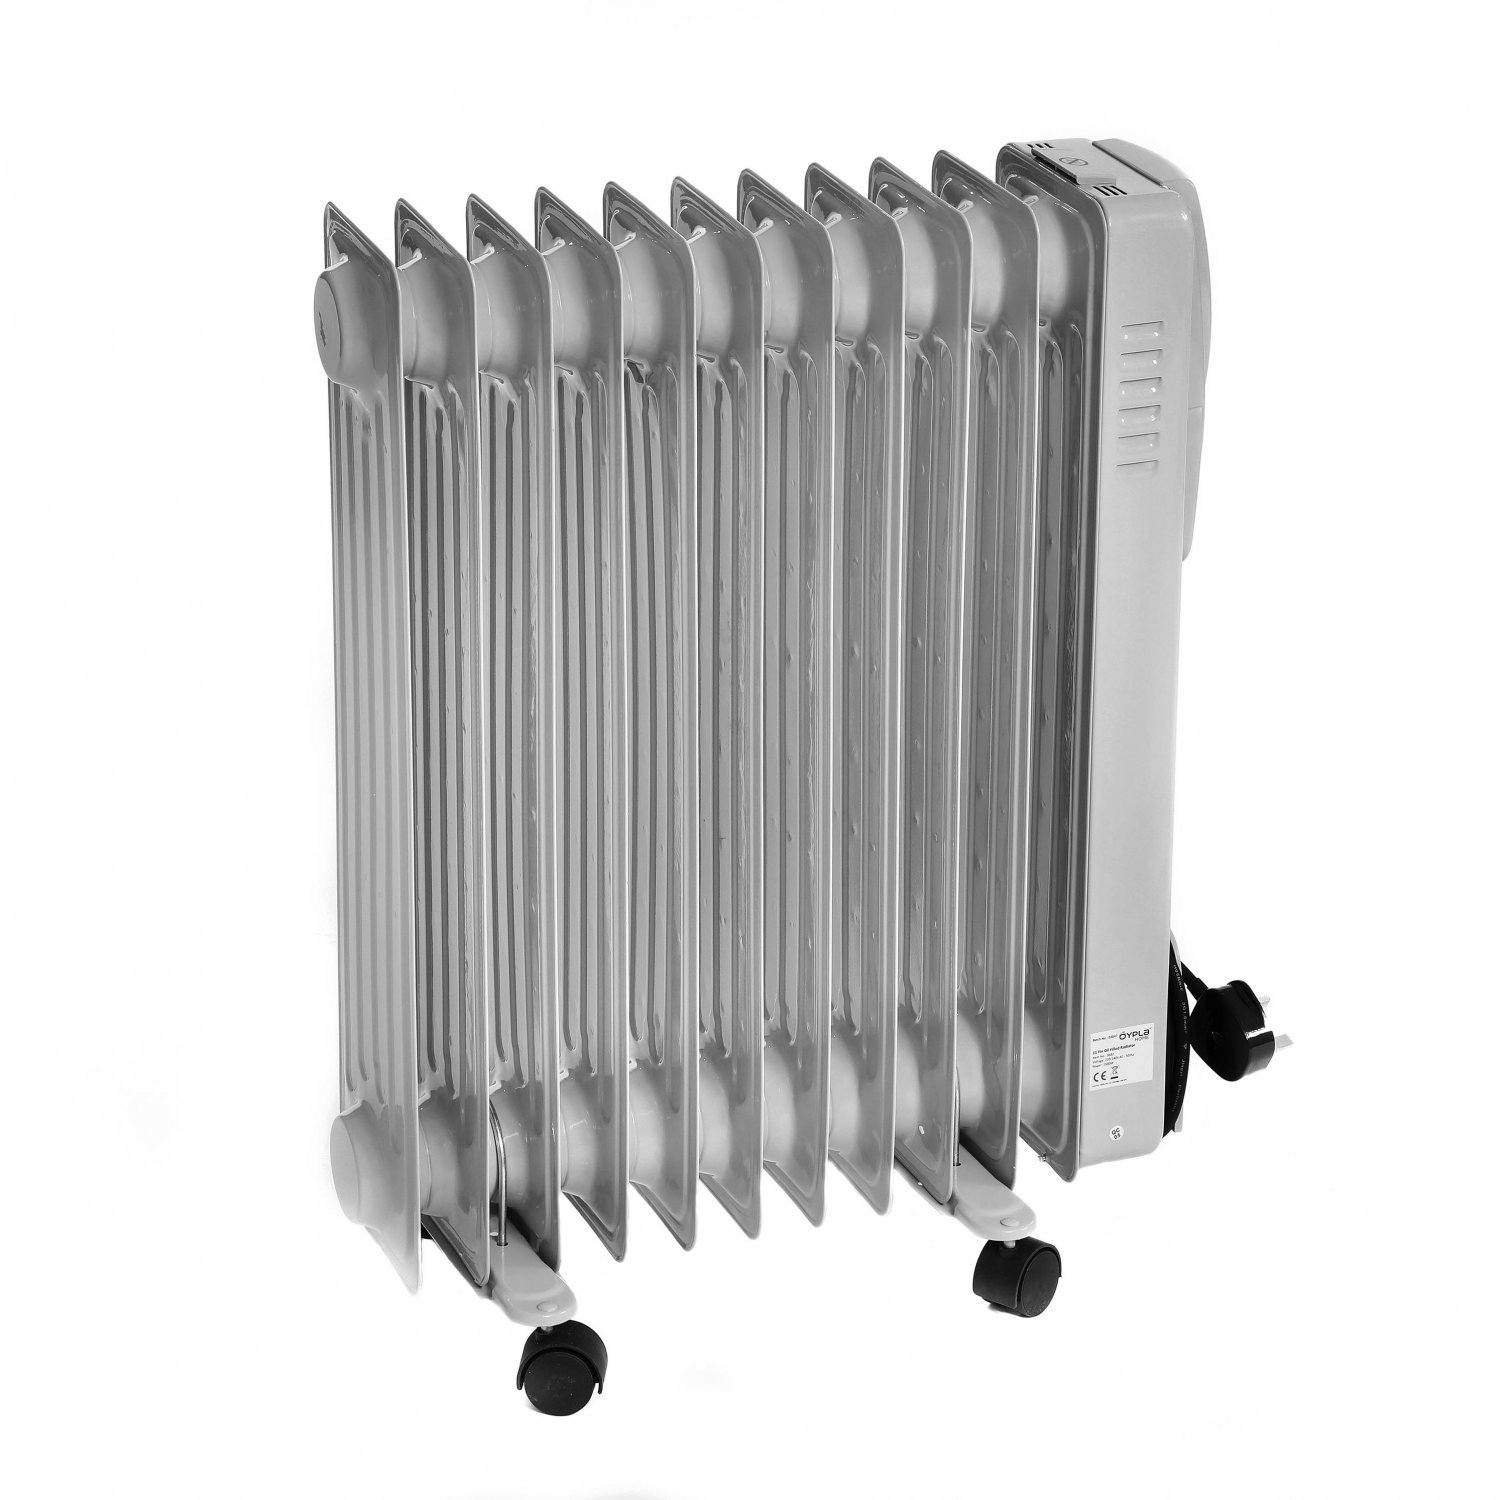 2500W 11 Fin Portable Oil Filled Radiator Electric Heater